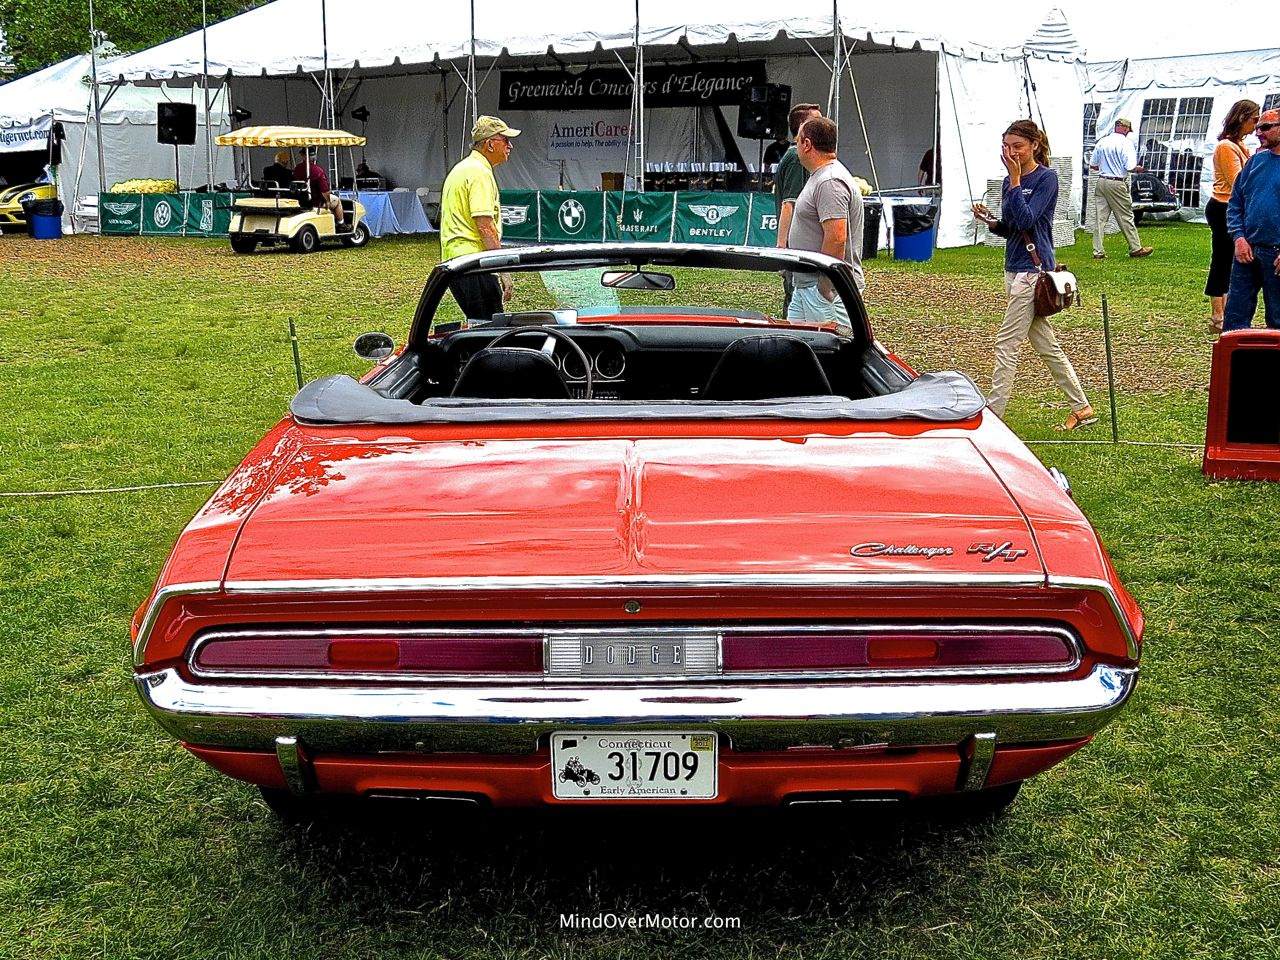 1970 Dodge Challenger R:T Convertible Rear